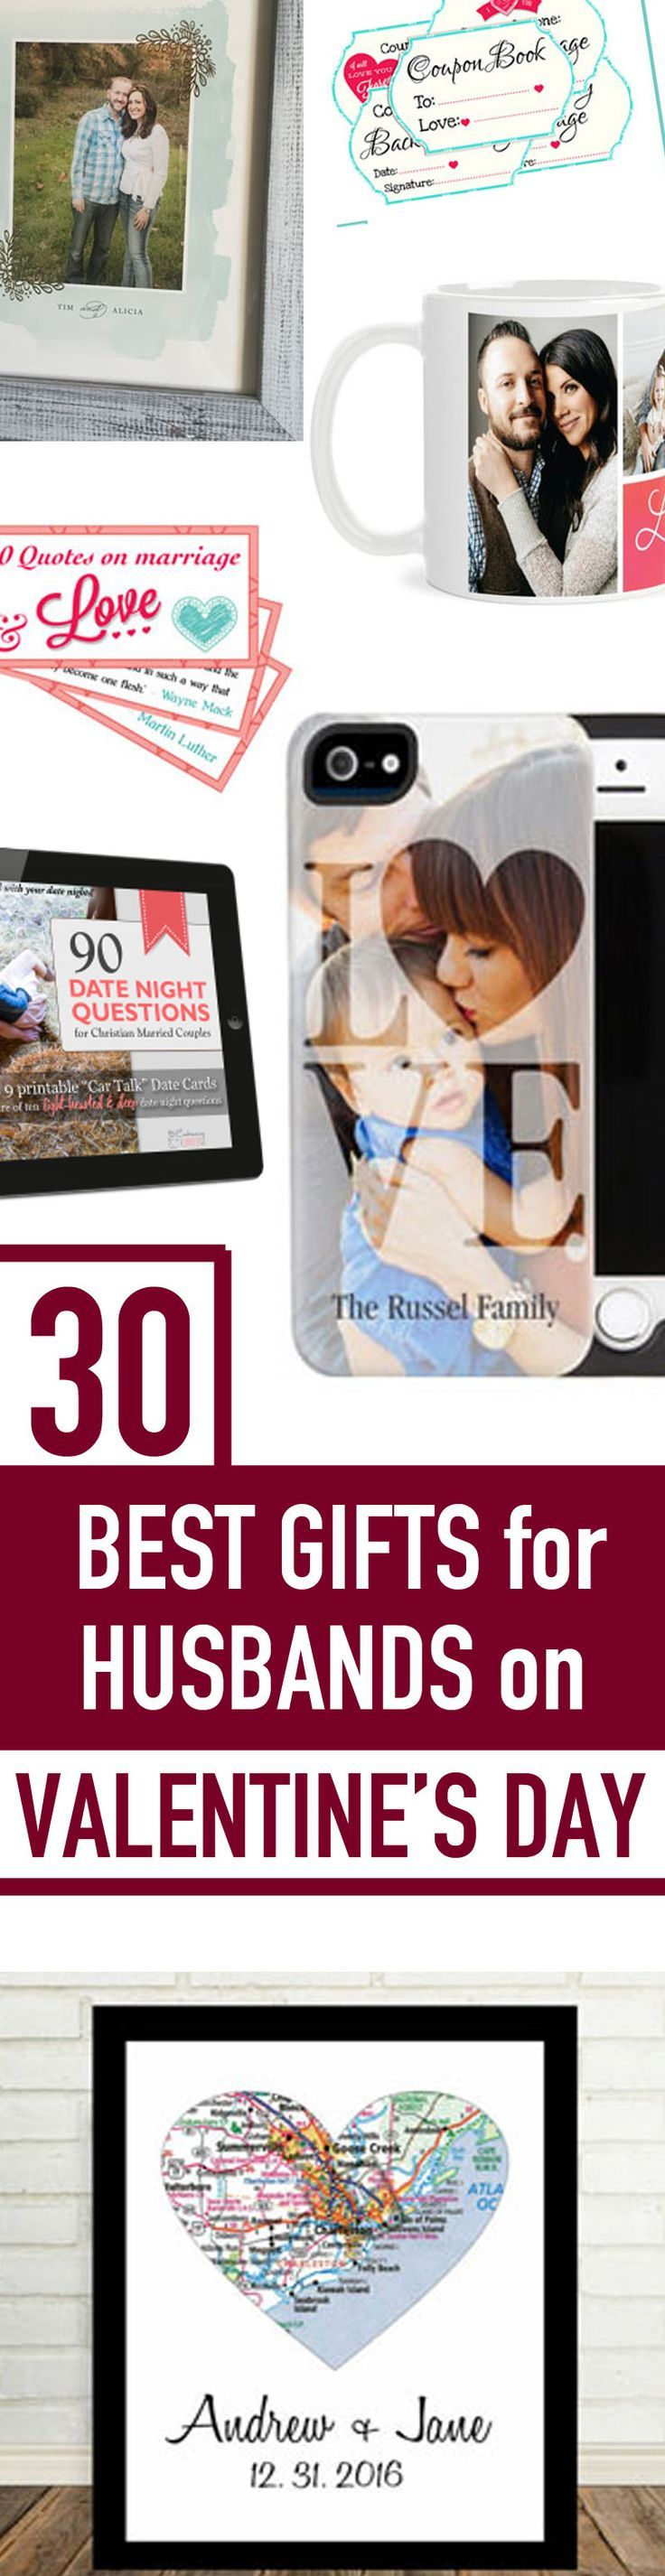 Ooooh... LOVE THESE! Great unique Valentine's Day gift ideas for husbands or boyfriends! Personal, unique and really fun Valentines gift ideas here! Plus date night ideas and love note ideas too! #valentinesdaygiftsforhim #valentinesday #giftsforhim #valentinesdayideasforhusband